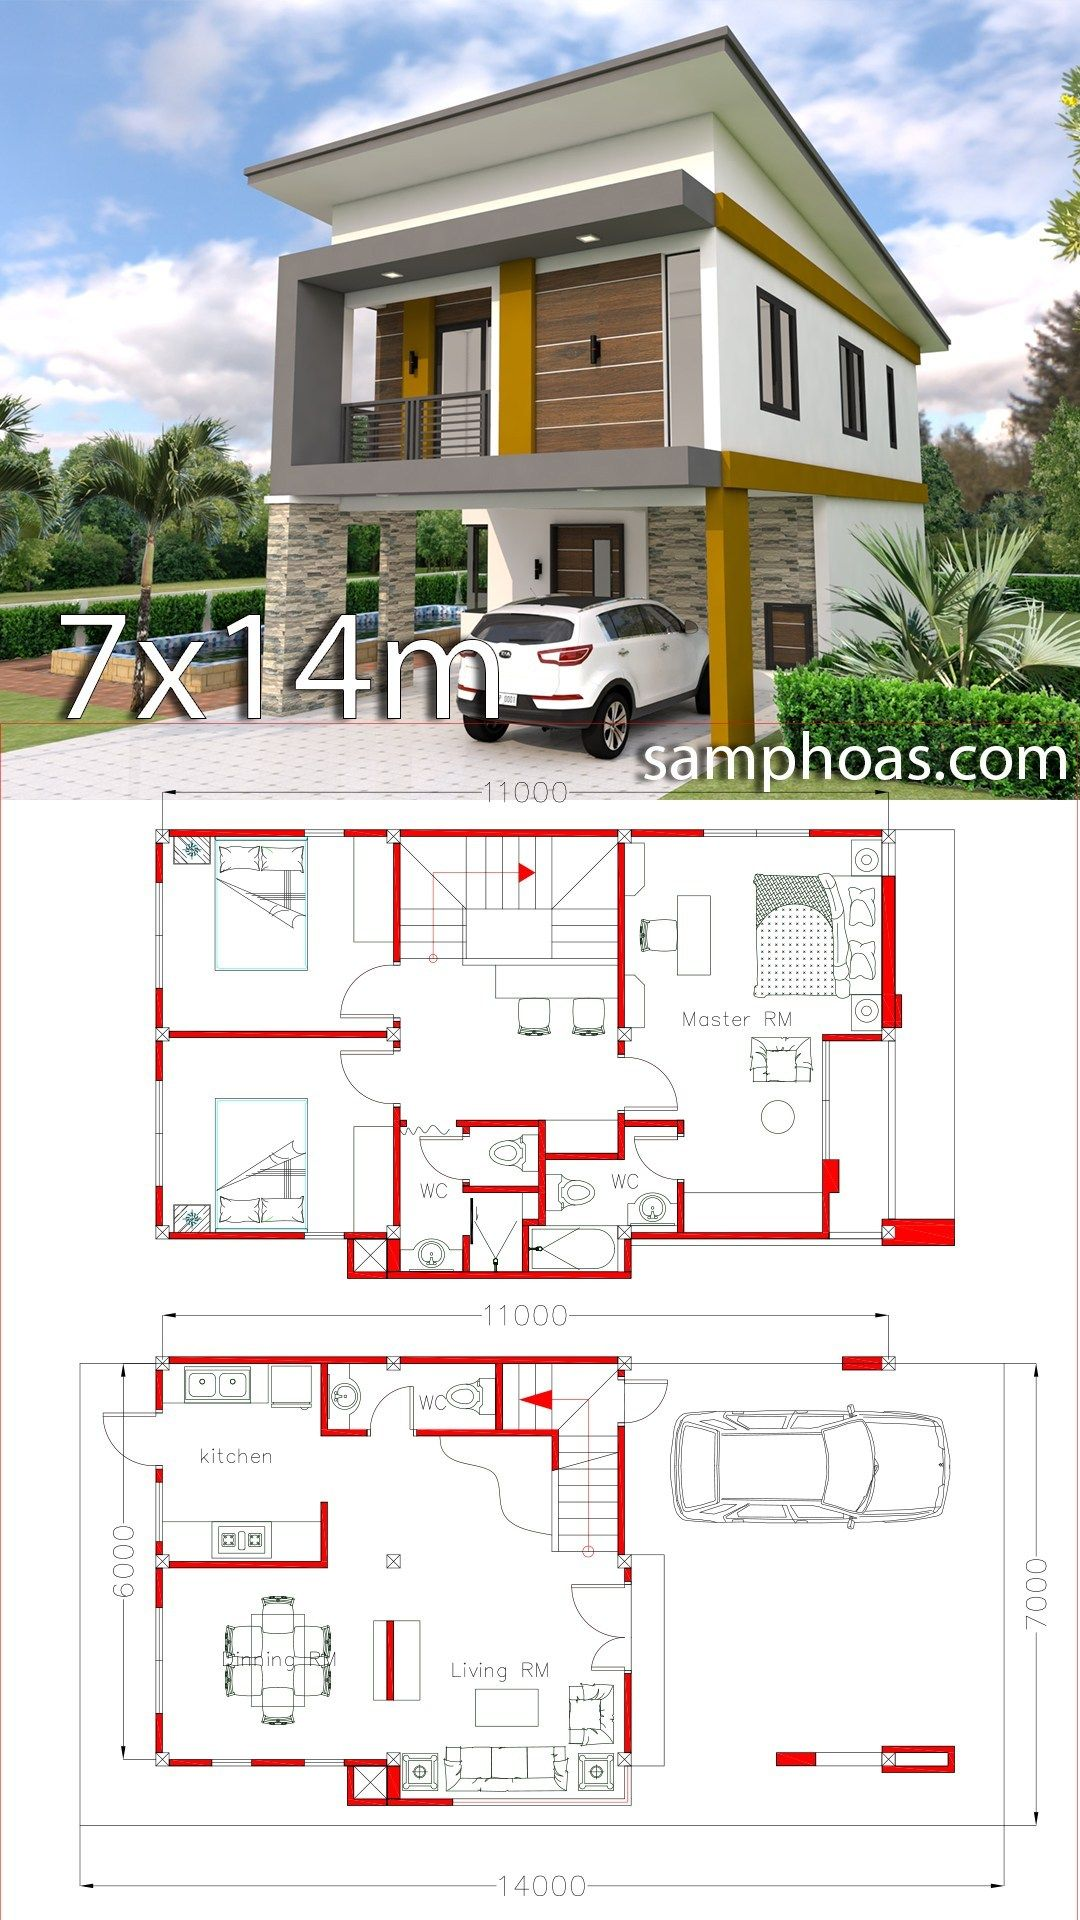 Small Home Design Plan 6x11m With 3 Bedrooms Simple House Design